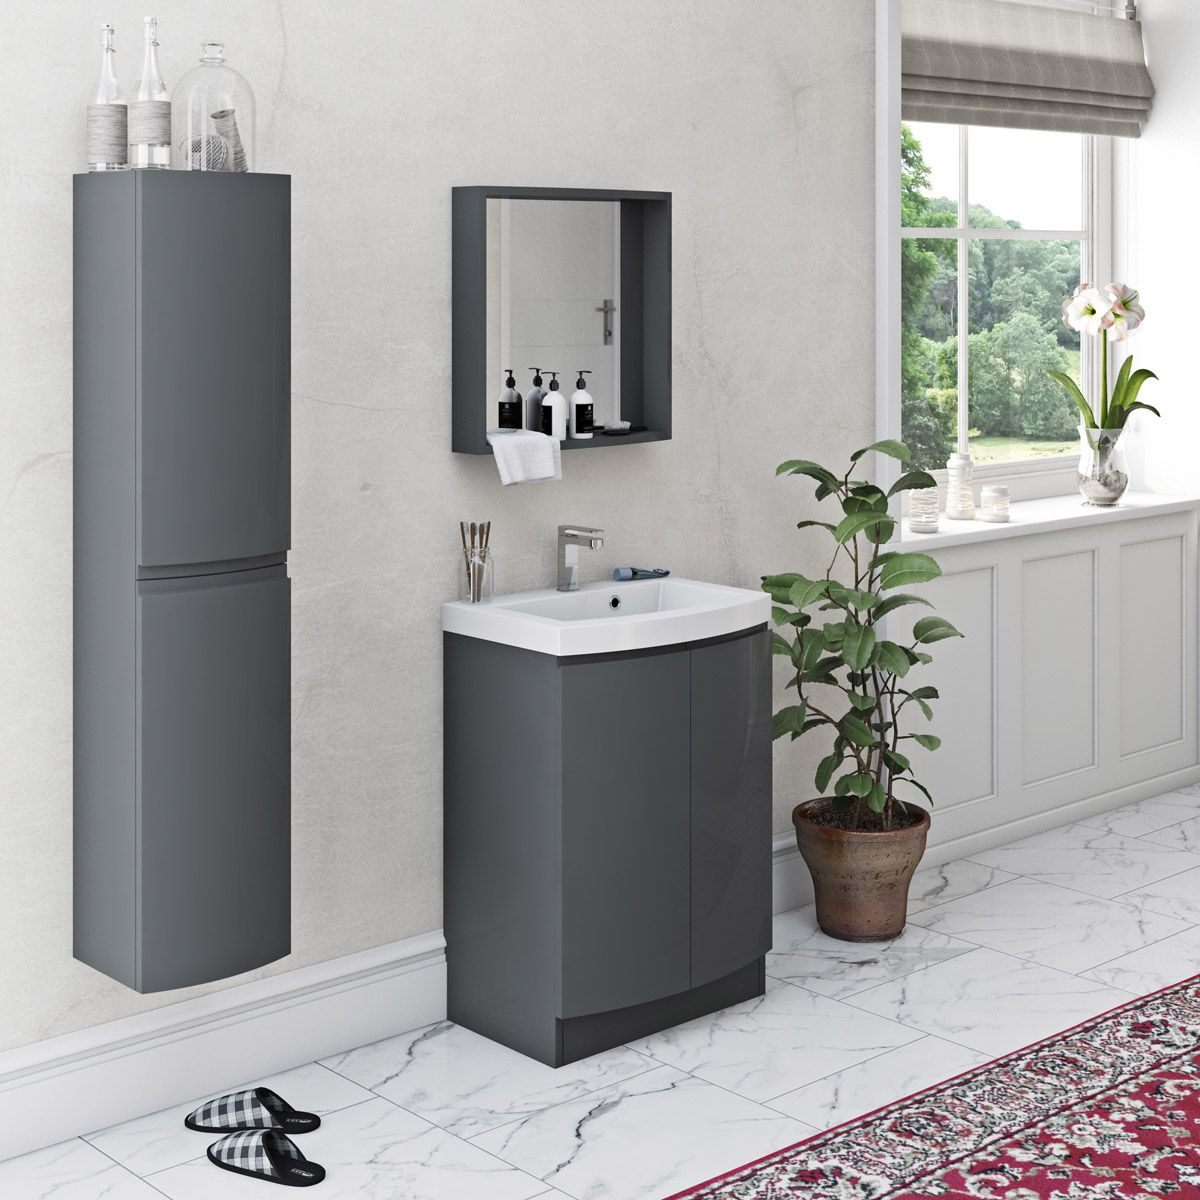 Mode Harrison Slate Gloss Grey Furniture Package With